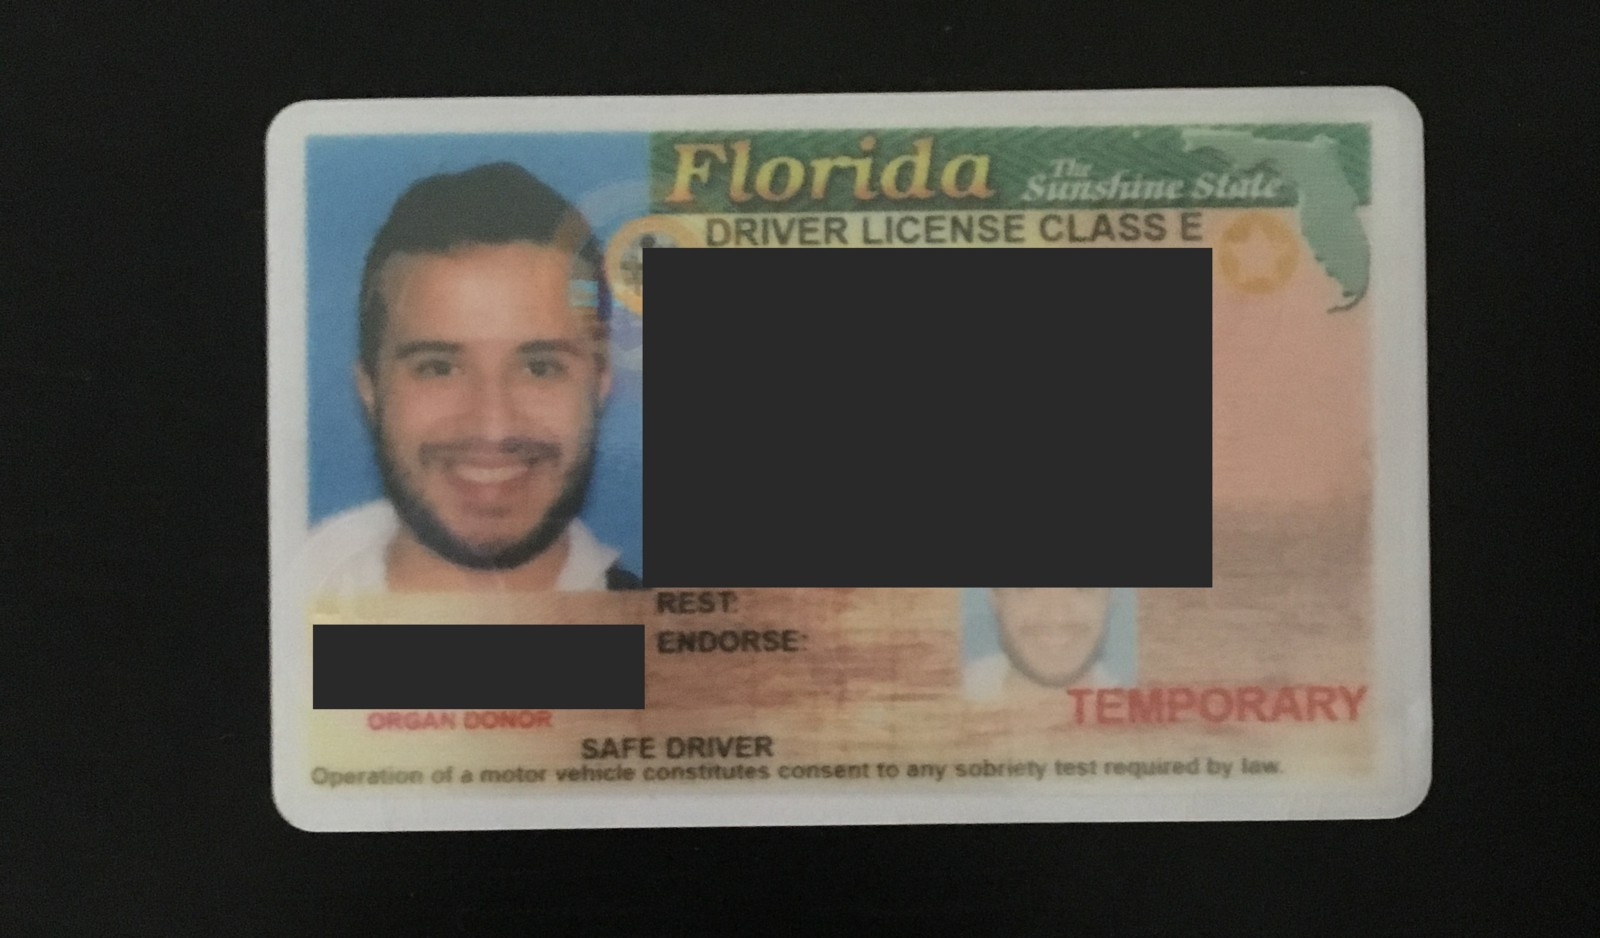 Traveling as an undocumented immigrant juansaaa for Fl dept of motor vehicles license check